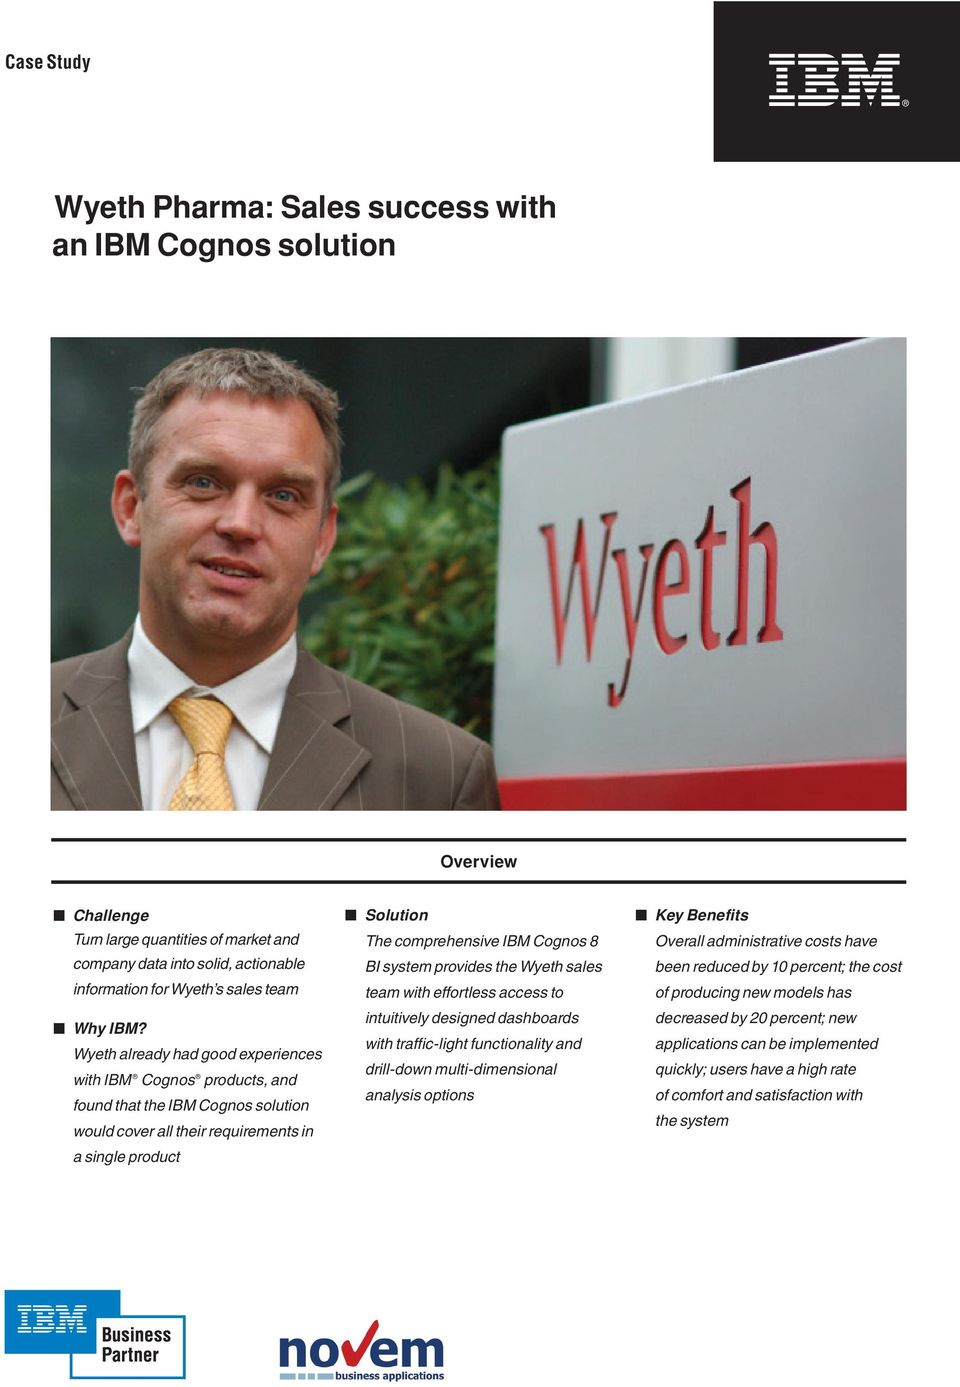 BI system provides the Wyeth sales team with effortless access to intuitively designed dashboards with traffic-light functionality and drill-down multi-dimensional analysis options Key Benefits